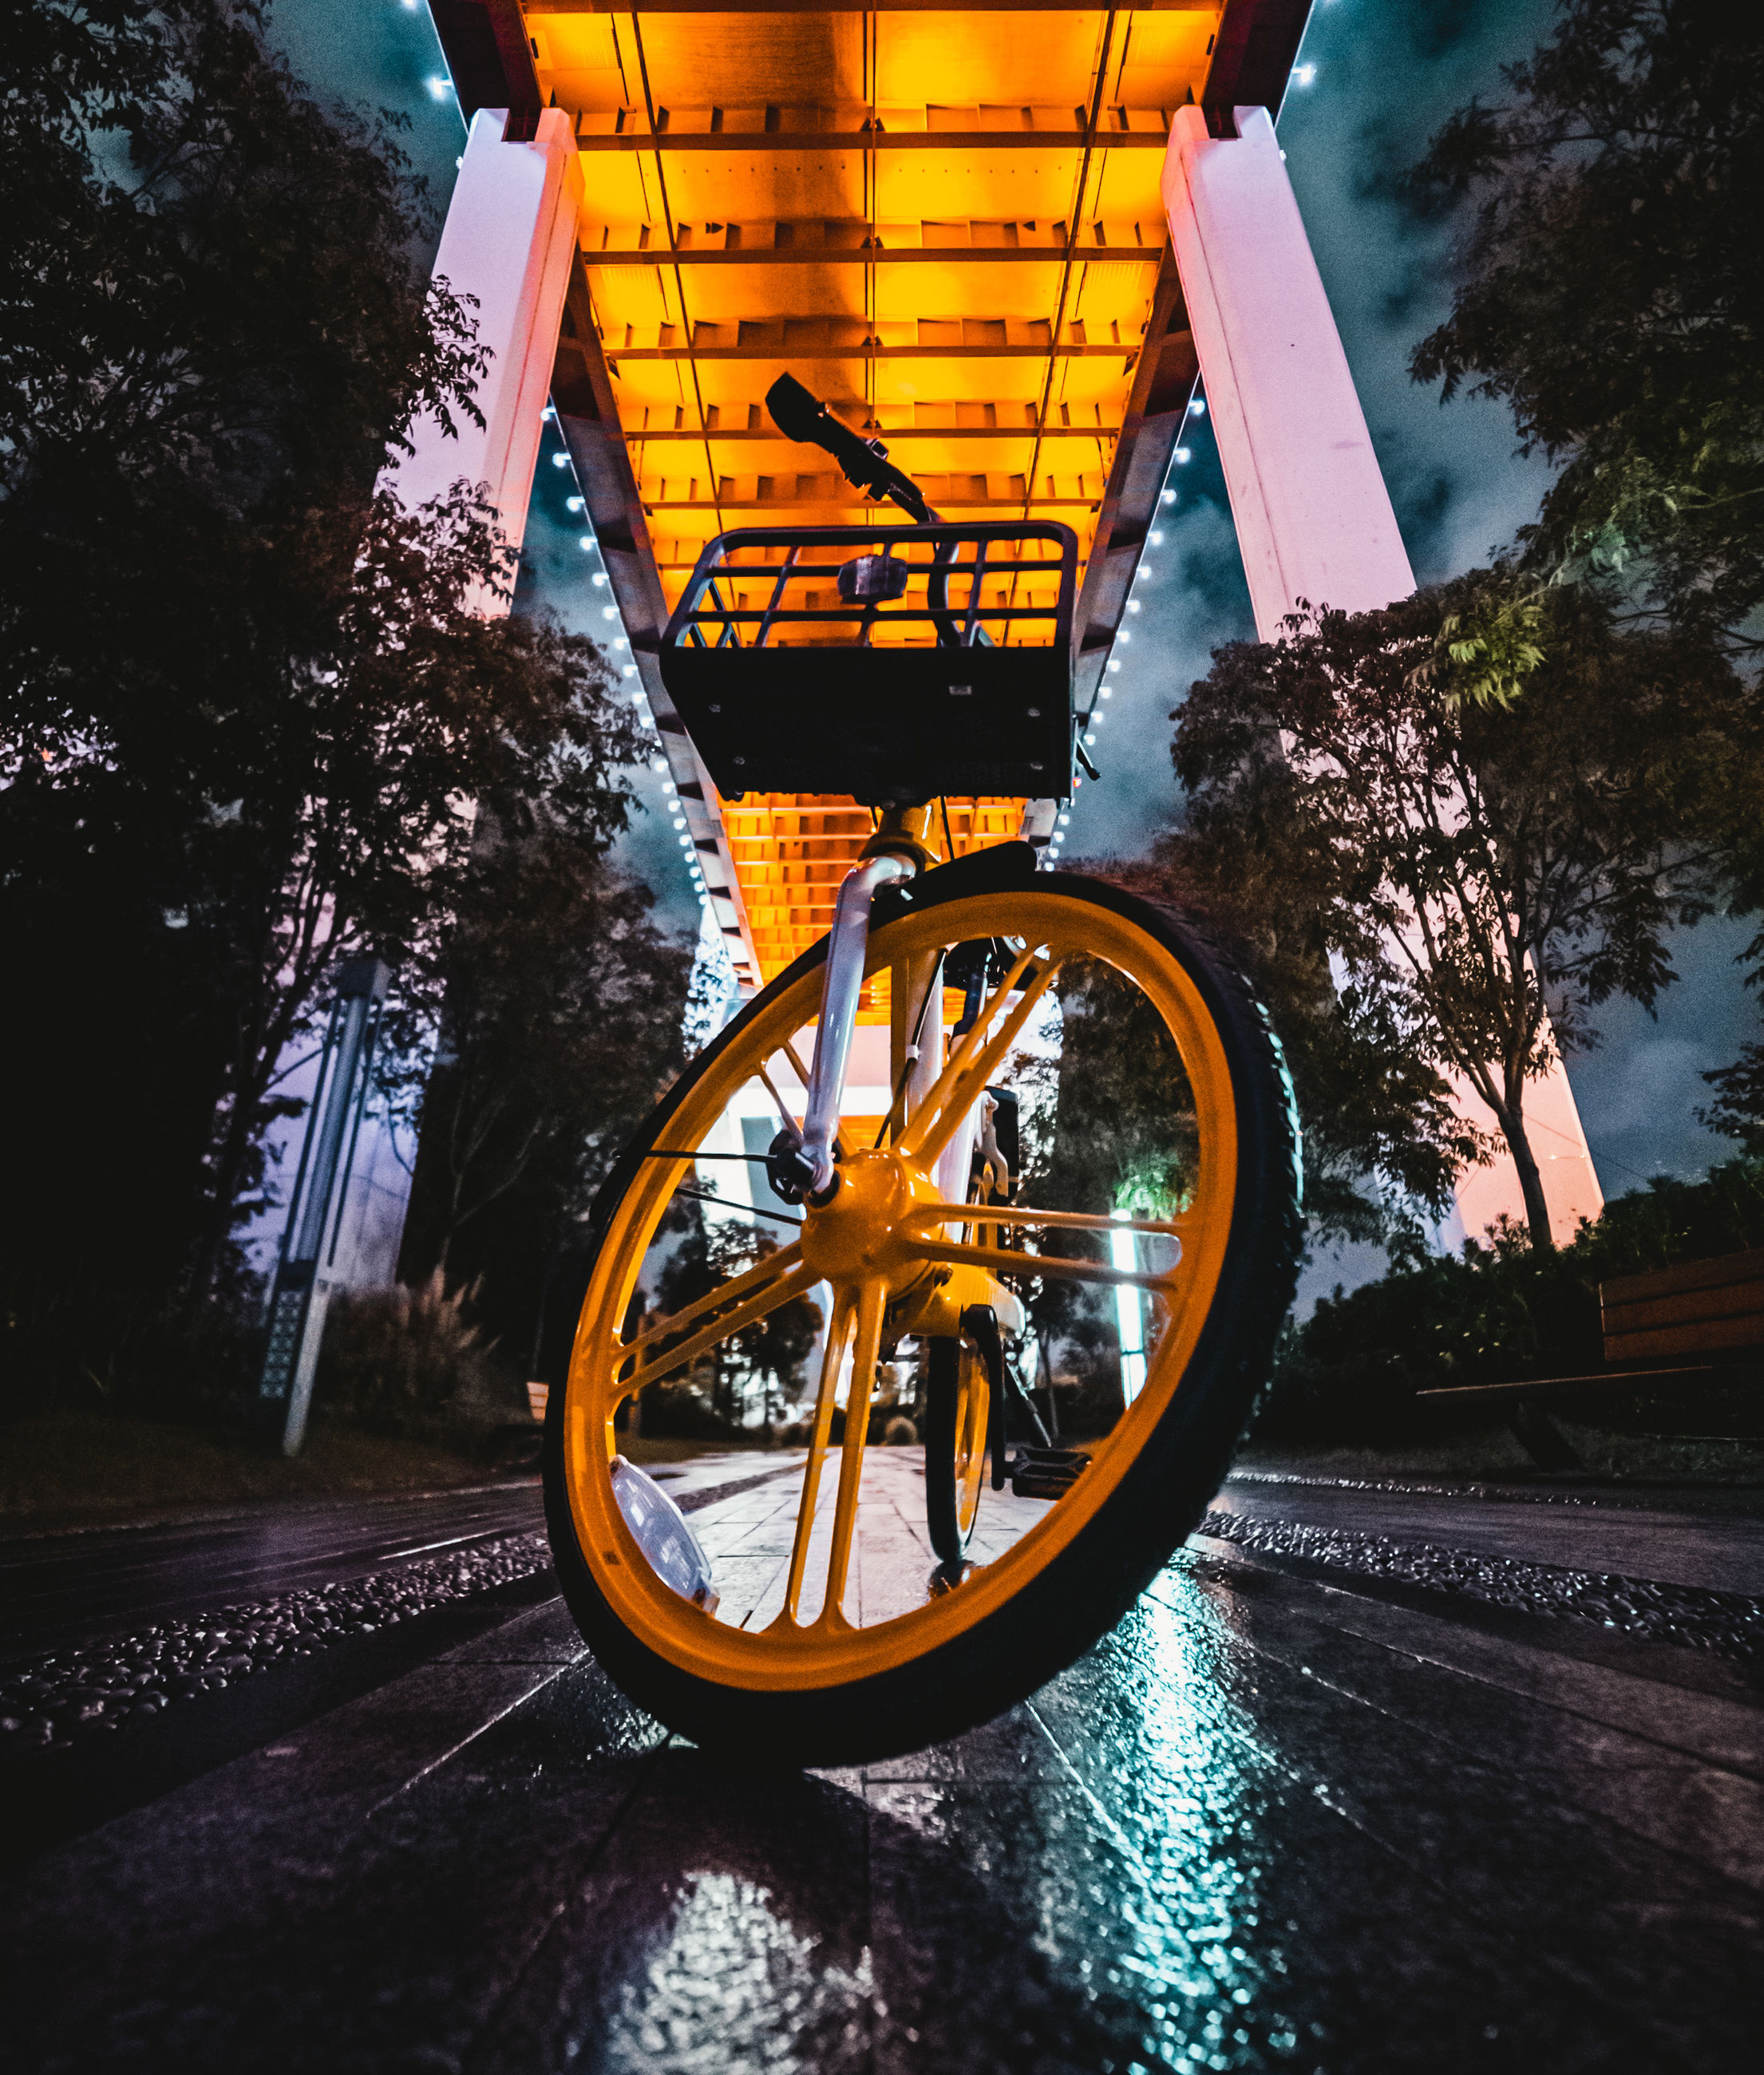 transportation, tree, architecture, nature, no people, plant, sky, mode of transportation, water, built structure, bicycle, outdoors, reflection, city, land vehicle, building exterior, wheel, road, cloud - sky, tire